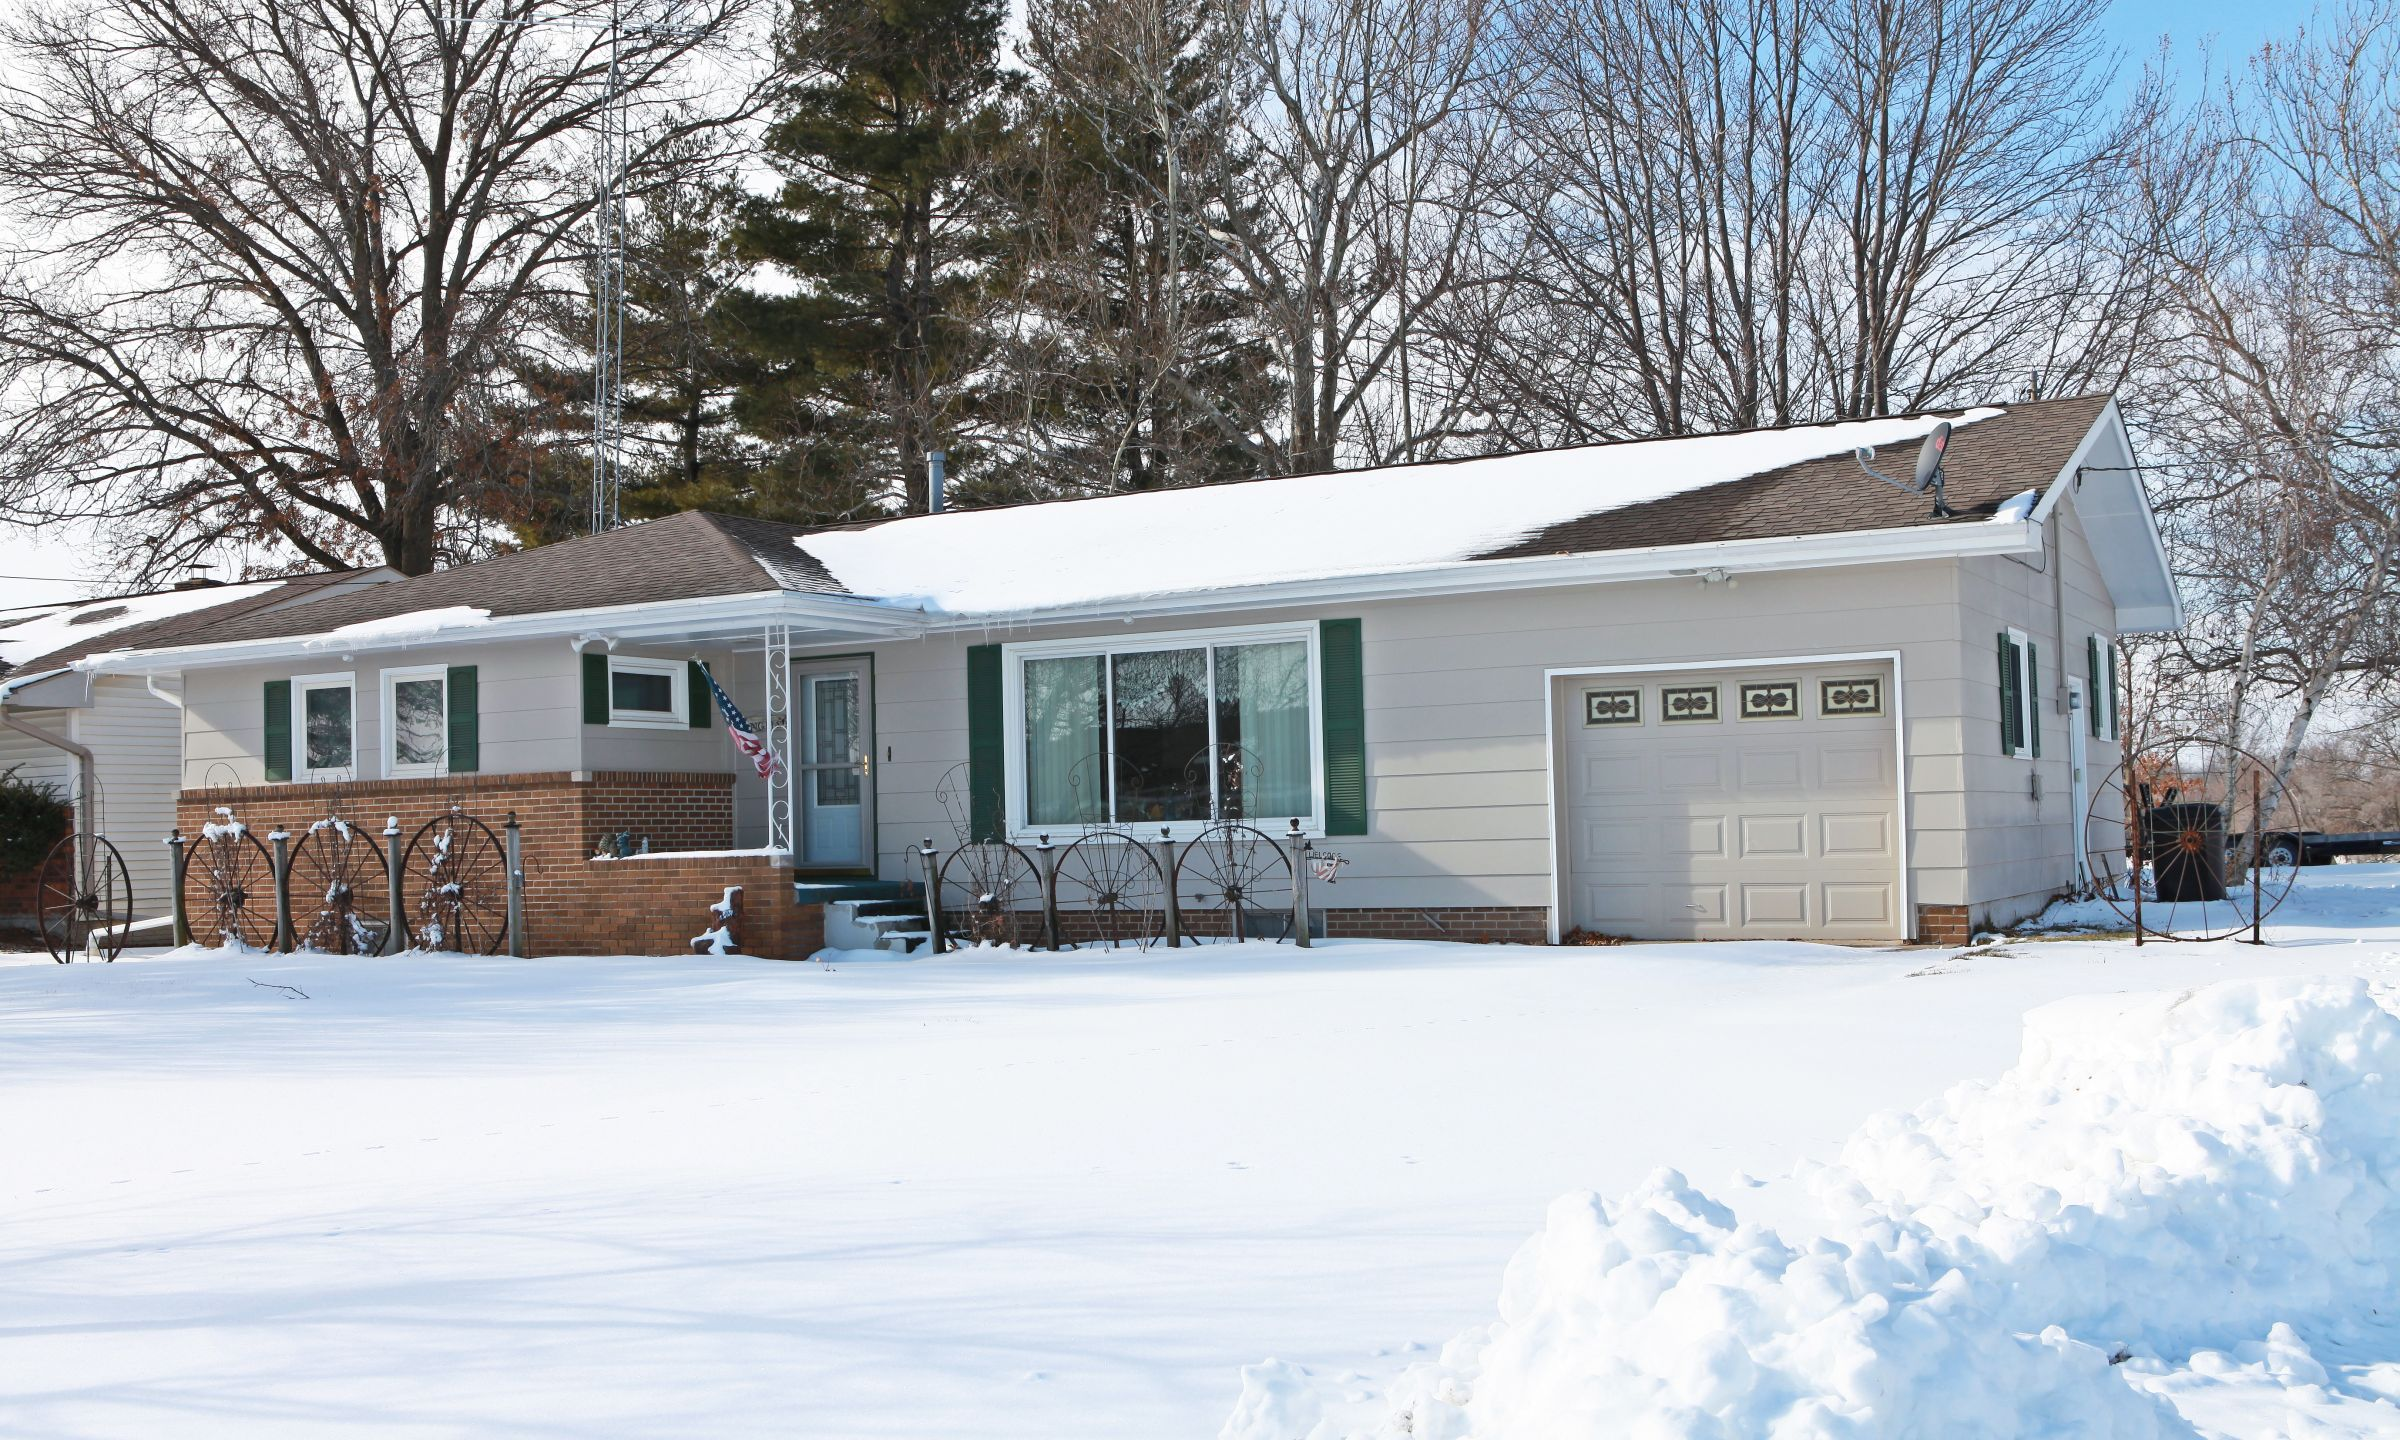 residential-lucas-county-iowa-0-acres-listing-number-15321-2-2021-01-18-210424.jpg